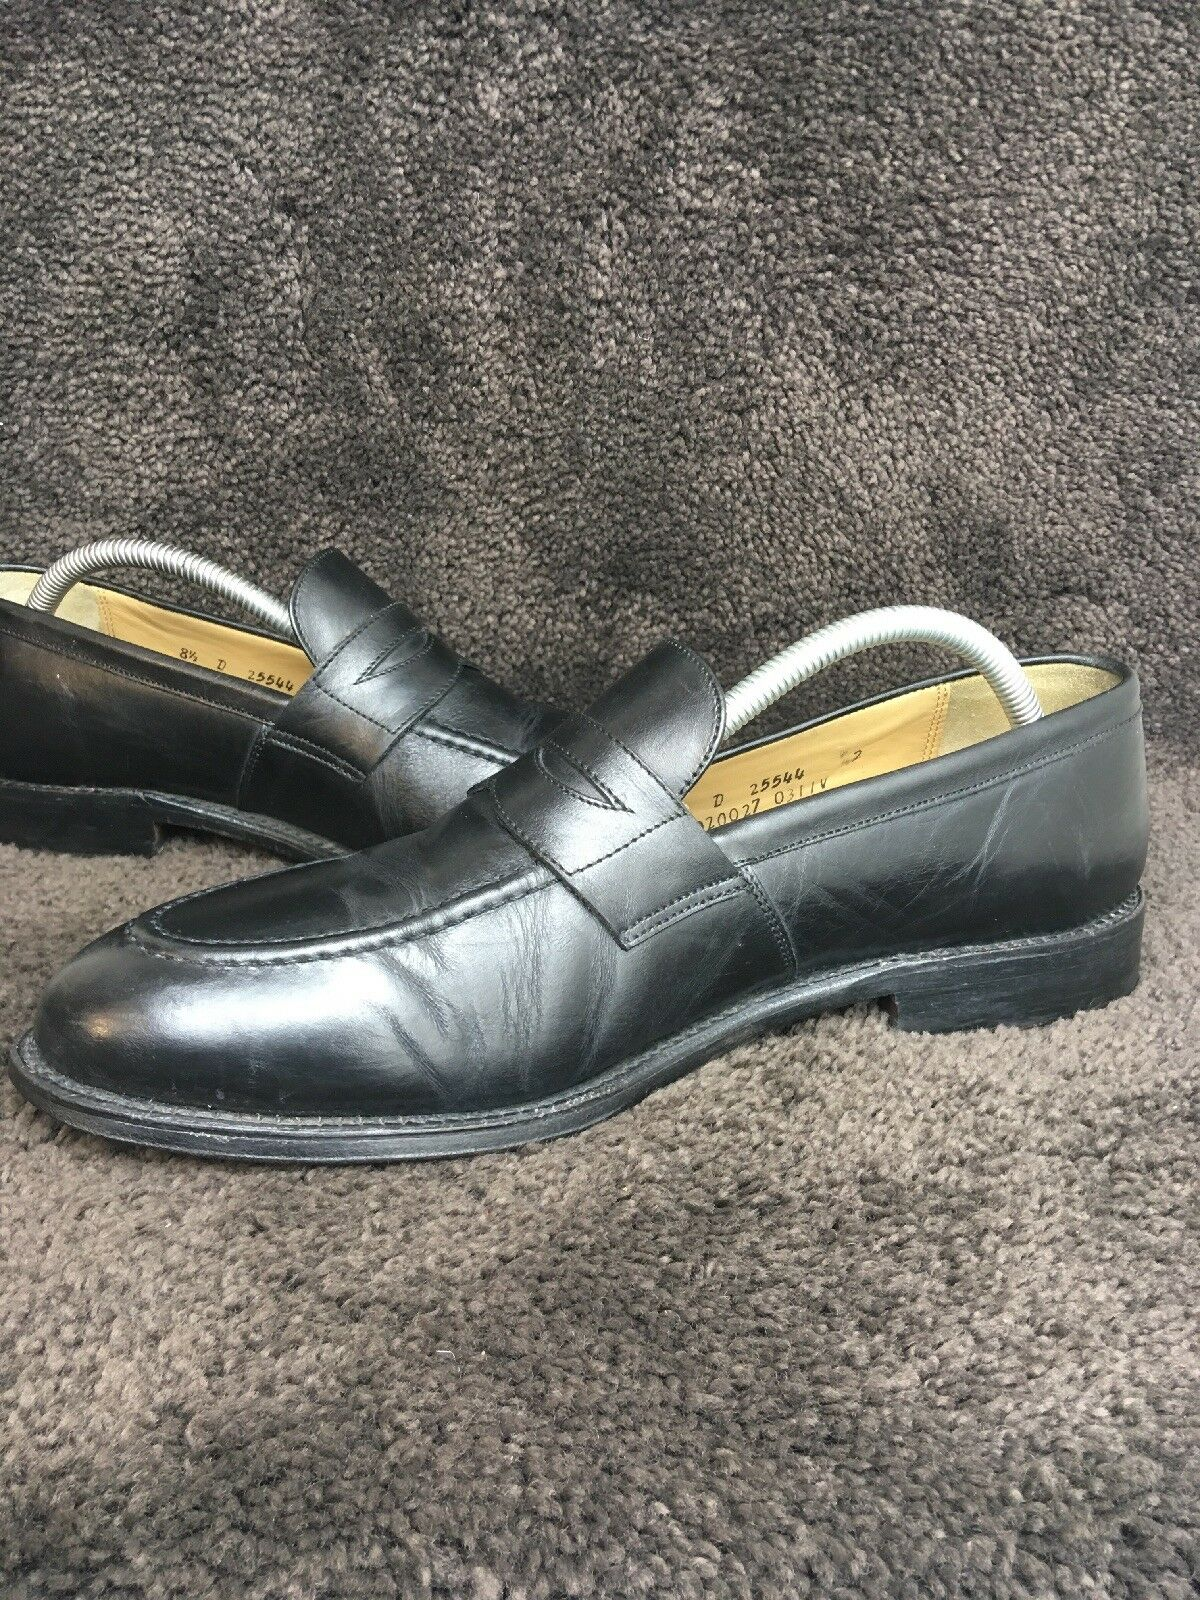 e0aebd8fa6c ... Brooks Bredhers 346 Penny Loafers Black Black Black Leather Sz 8.5 D  227 daf45d ...